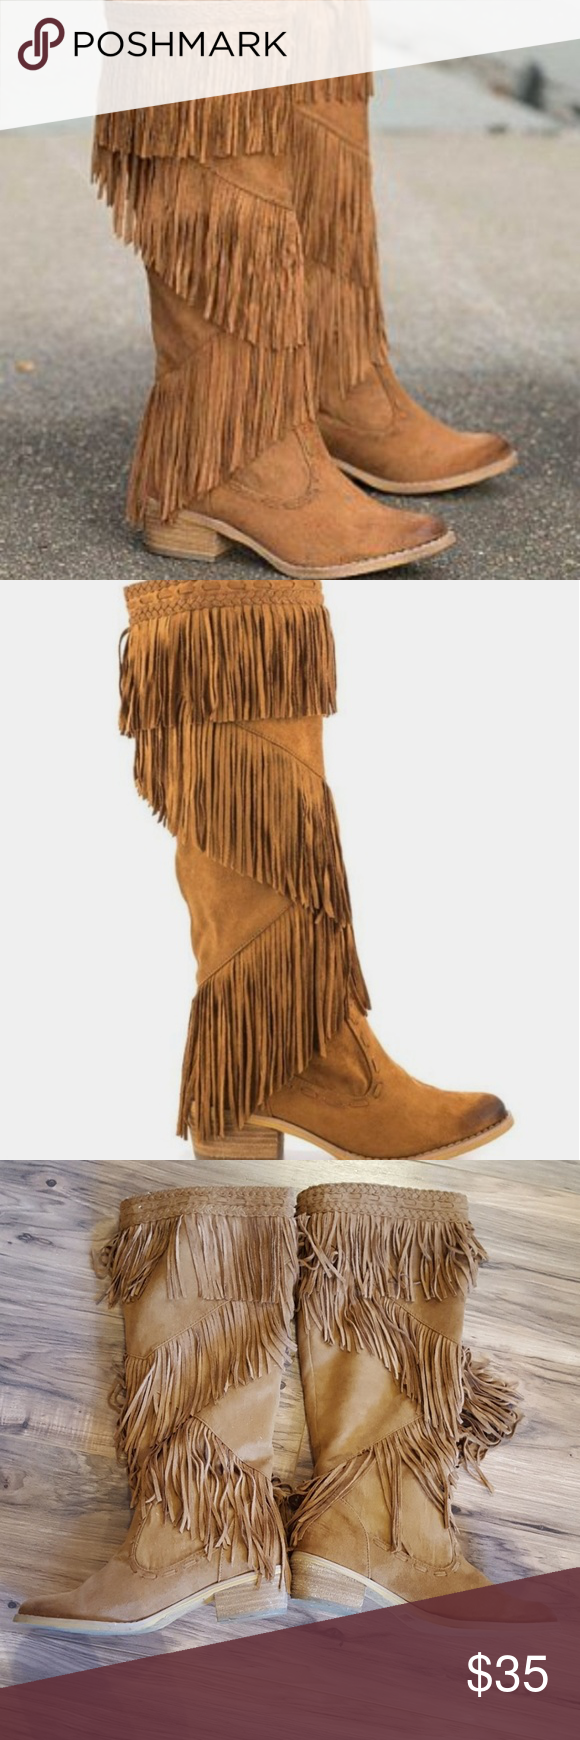 Not Rated Fringe Boots Fringe Boots Boots Not Rated Shoes